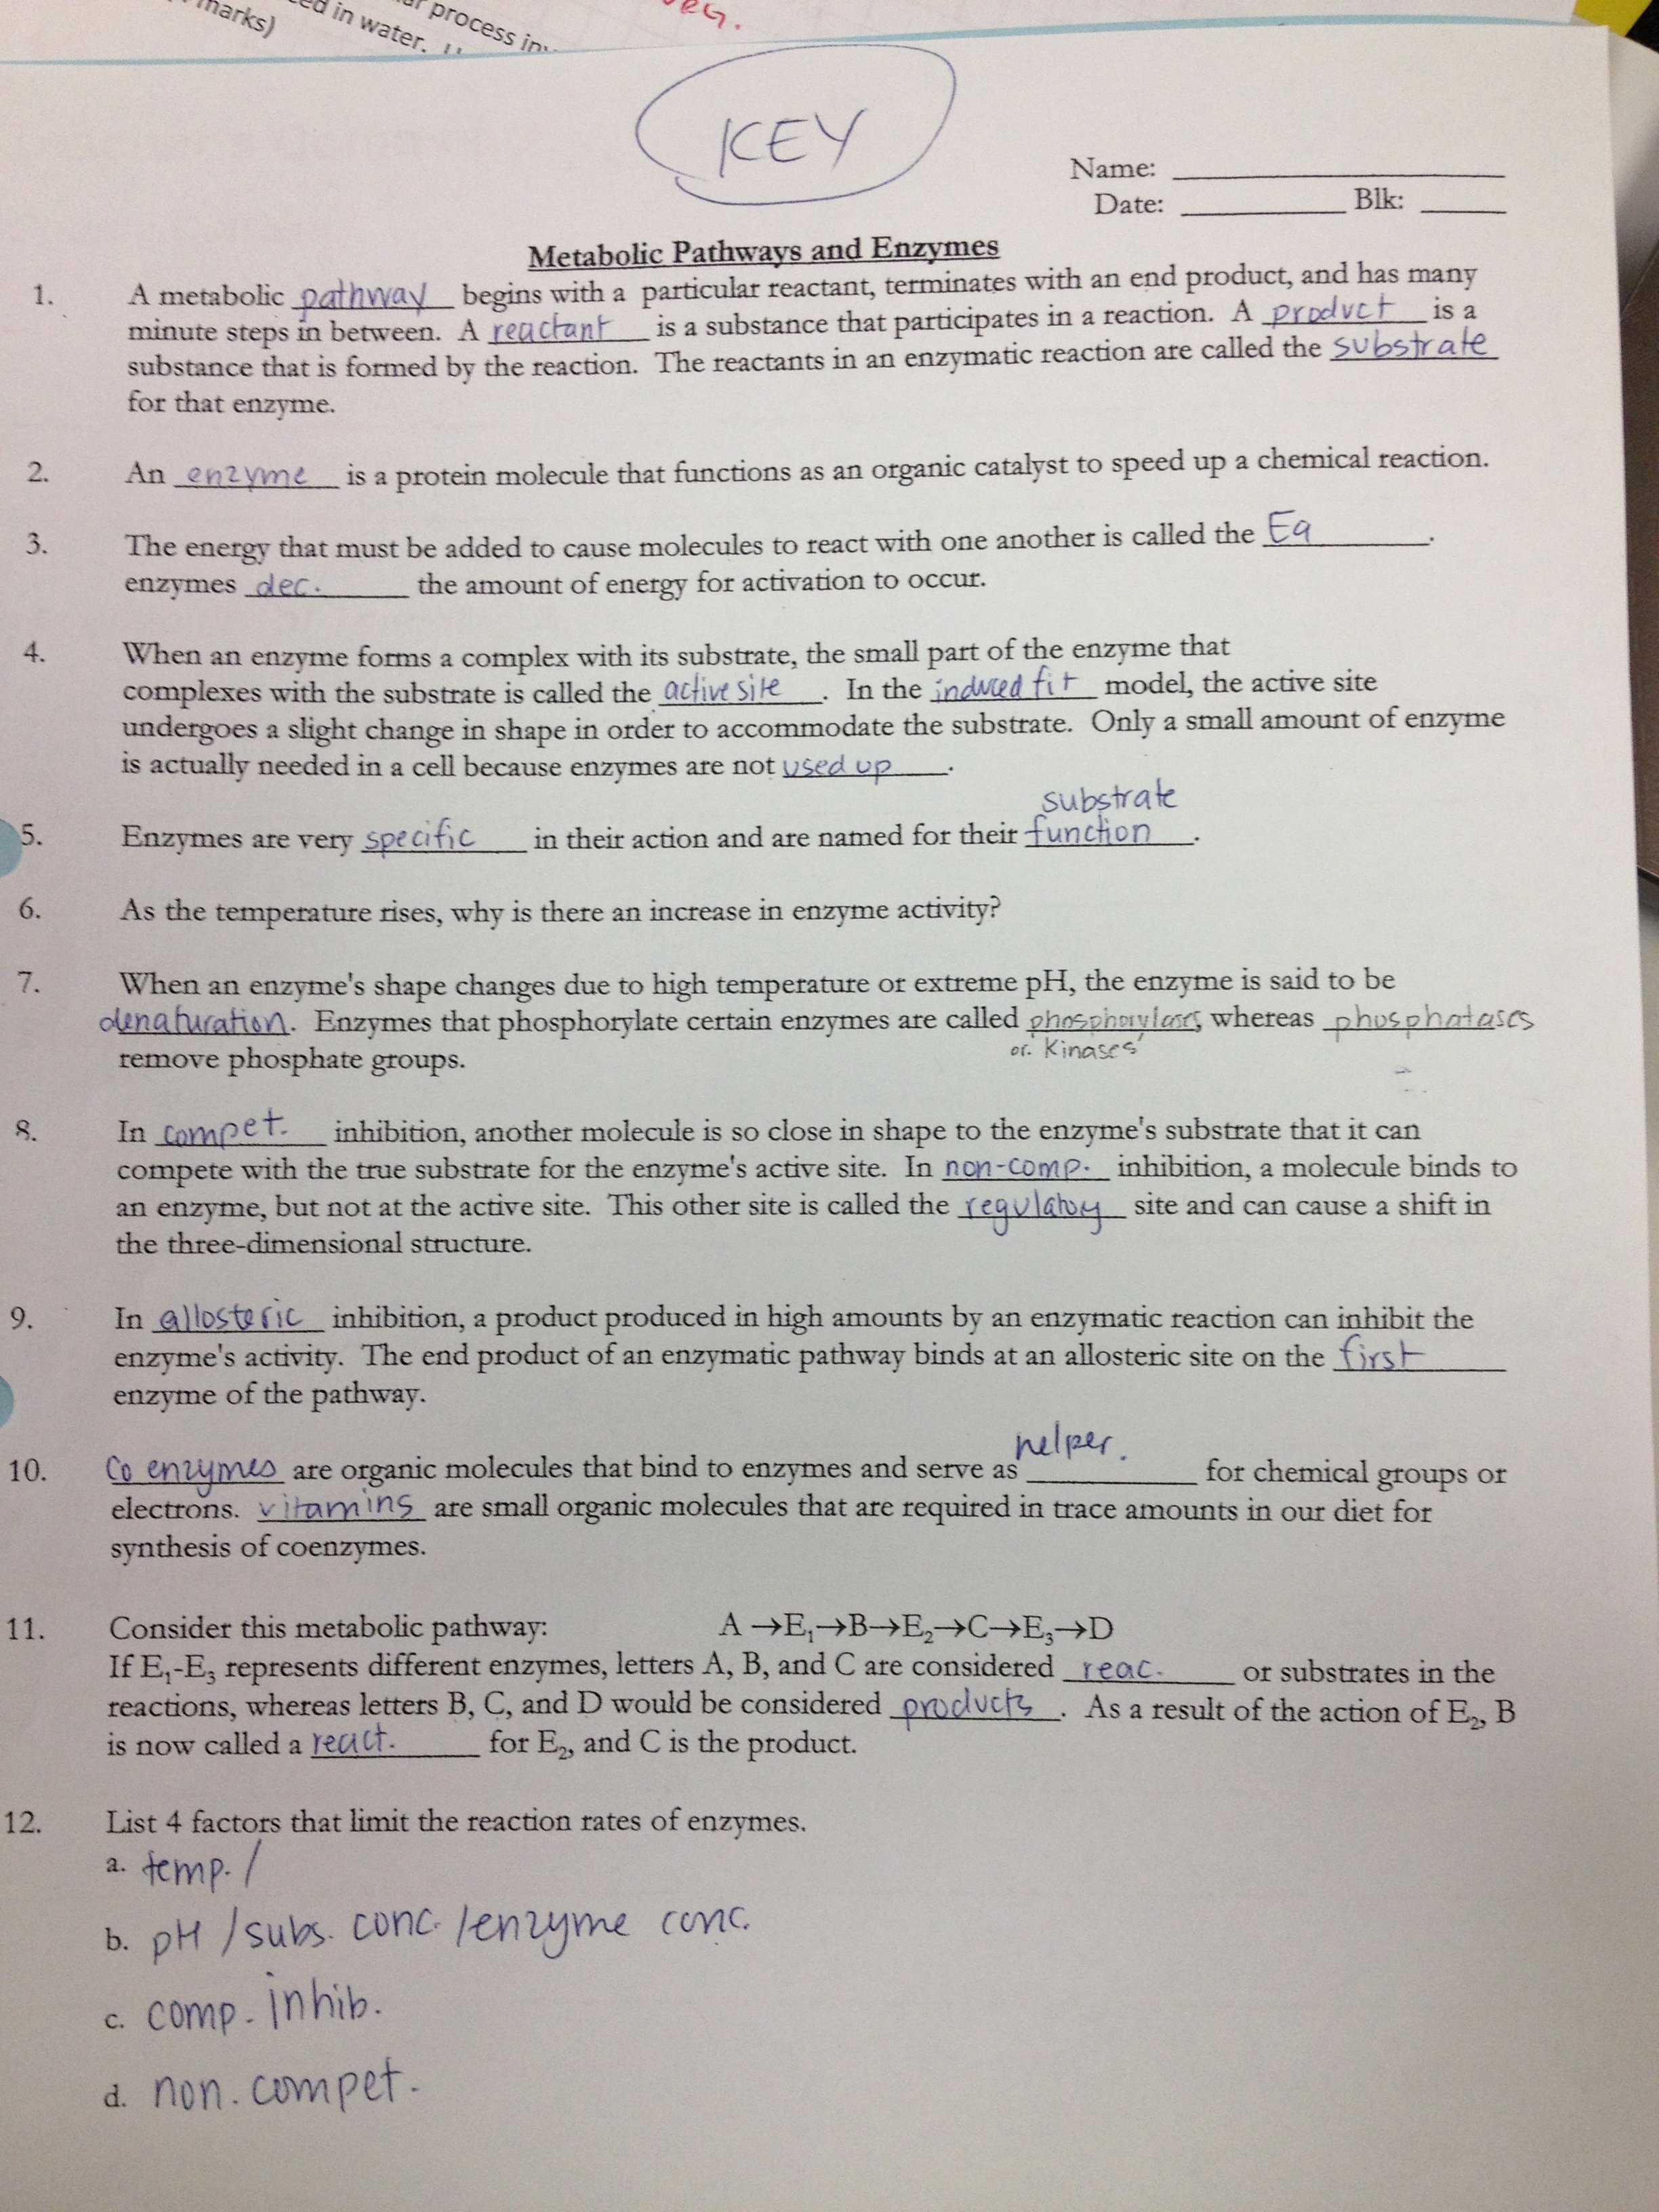 Enzyme Reactions Worksheet Answer Key Awesome 301 Moved Permanently